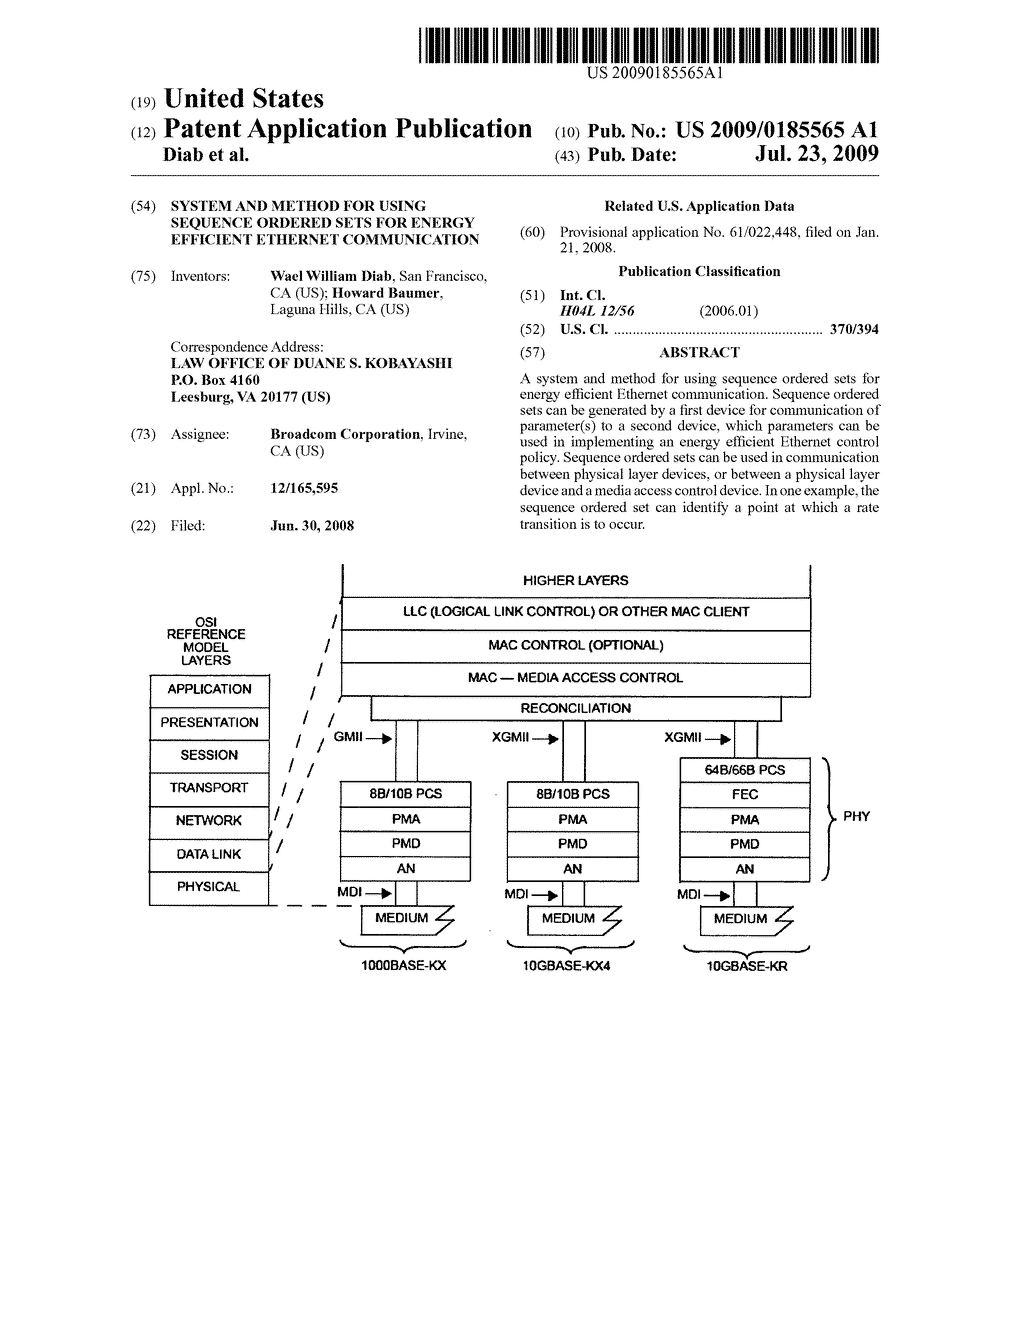 SYSTEM AND METHOD FOR USING SEQUENCE ORDERED SETS FOR ENERGY EFFICIENT ETHERNET COMMUNICATION - diagram, schematic, and image 01